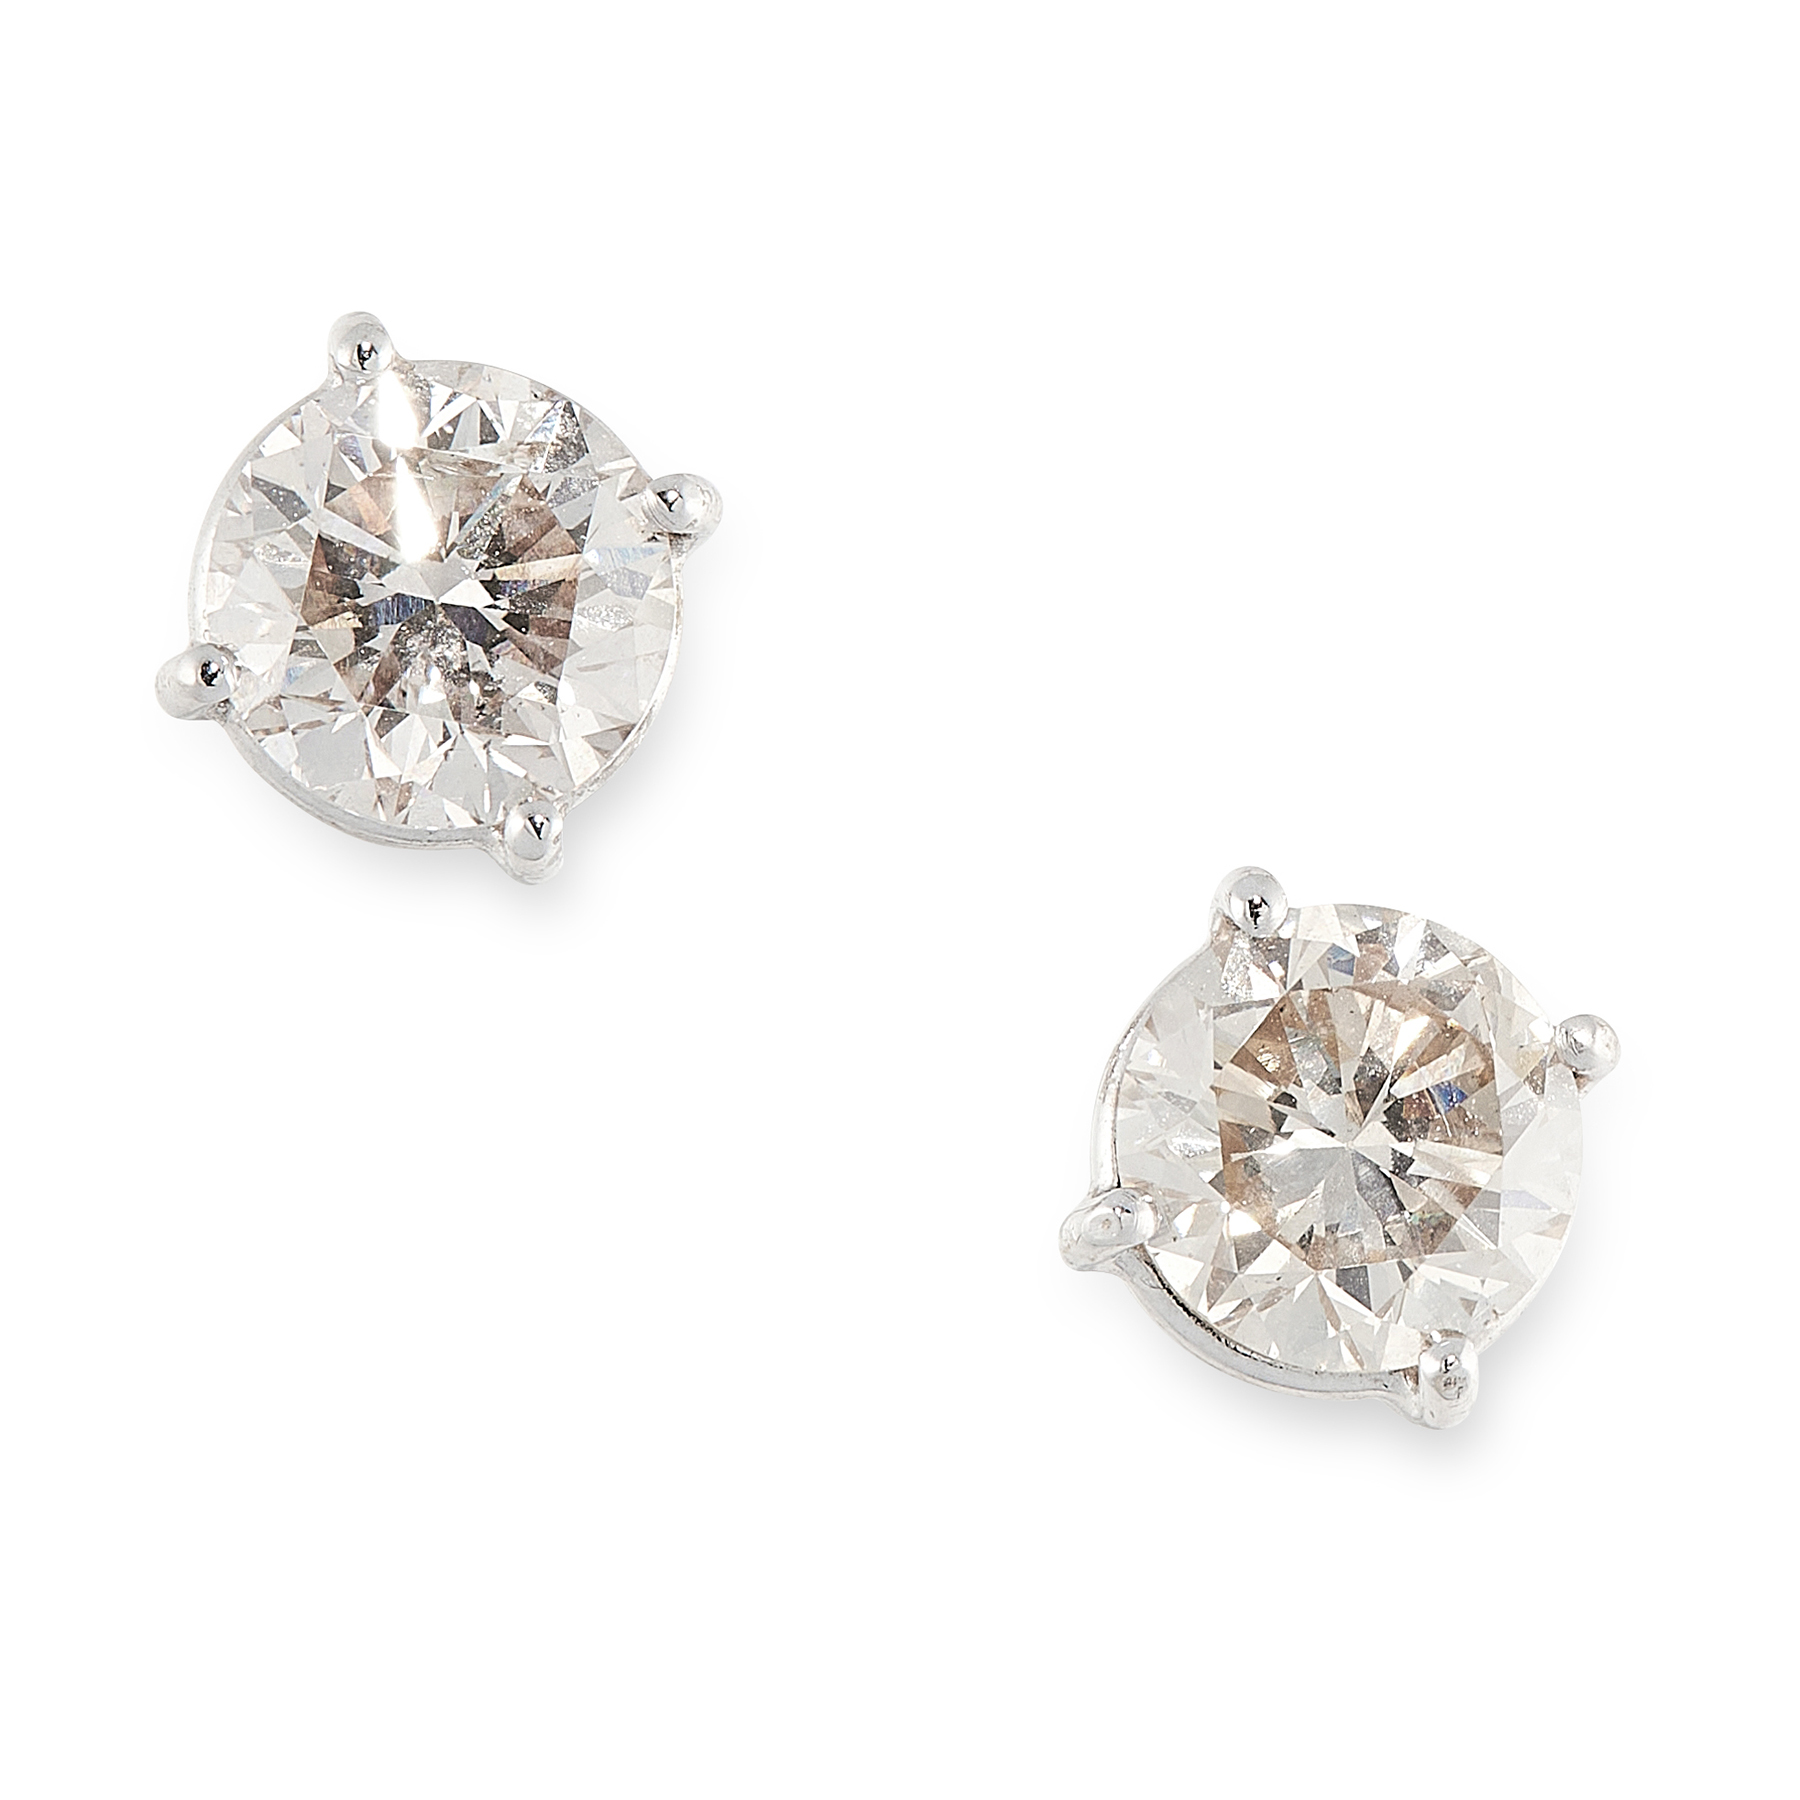 A PAIR OF DIAMOND STUD EARRINGS in 18ct white gold, set with round cut diamonds totalling 2.03